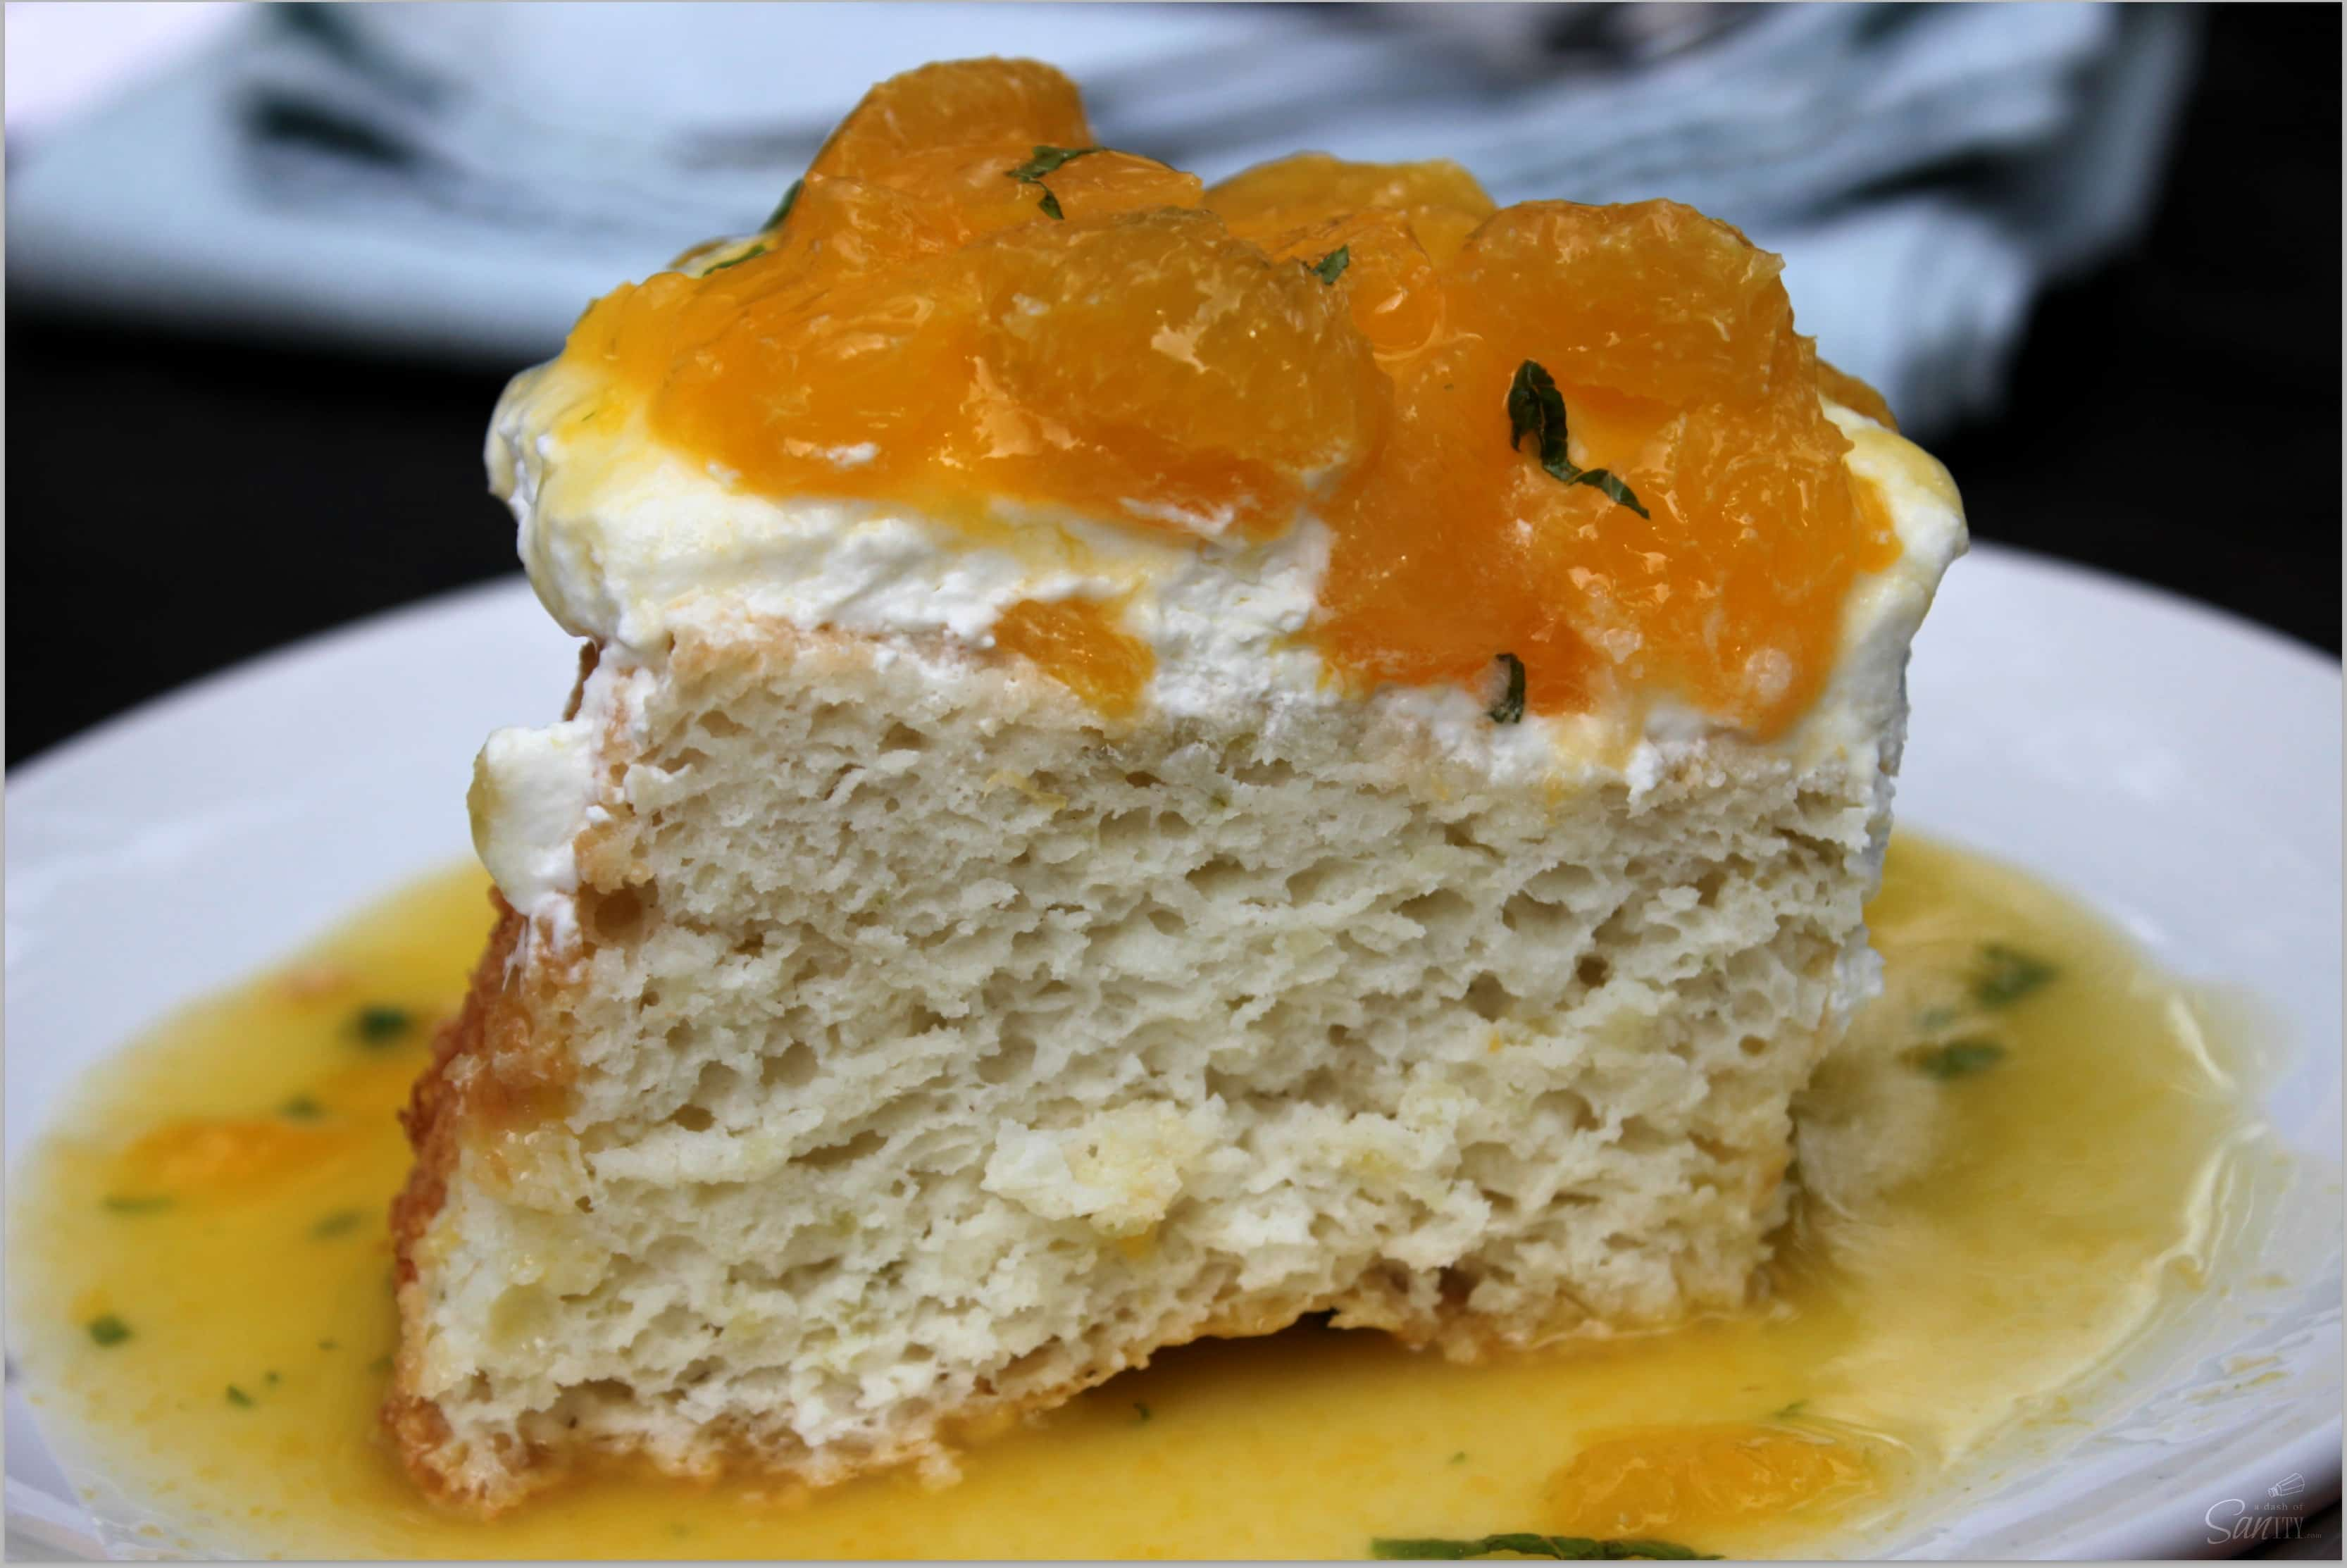 Citrus Angel Food Cake Topped with Fresh Oranges and Mint is a classic cake made with non-traditional twist. It is the perfect mix of sweet and tangy.